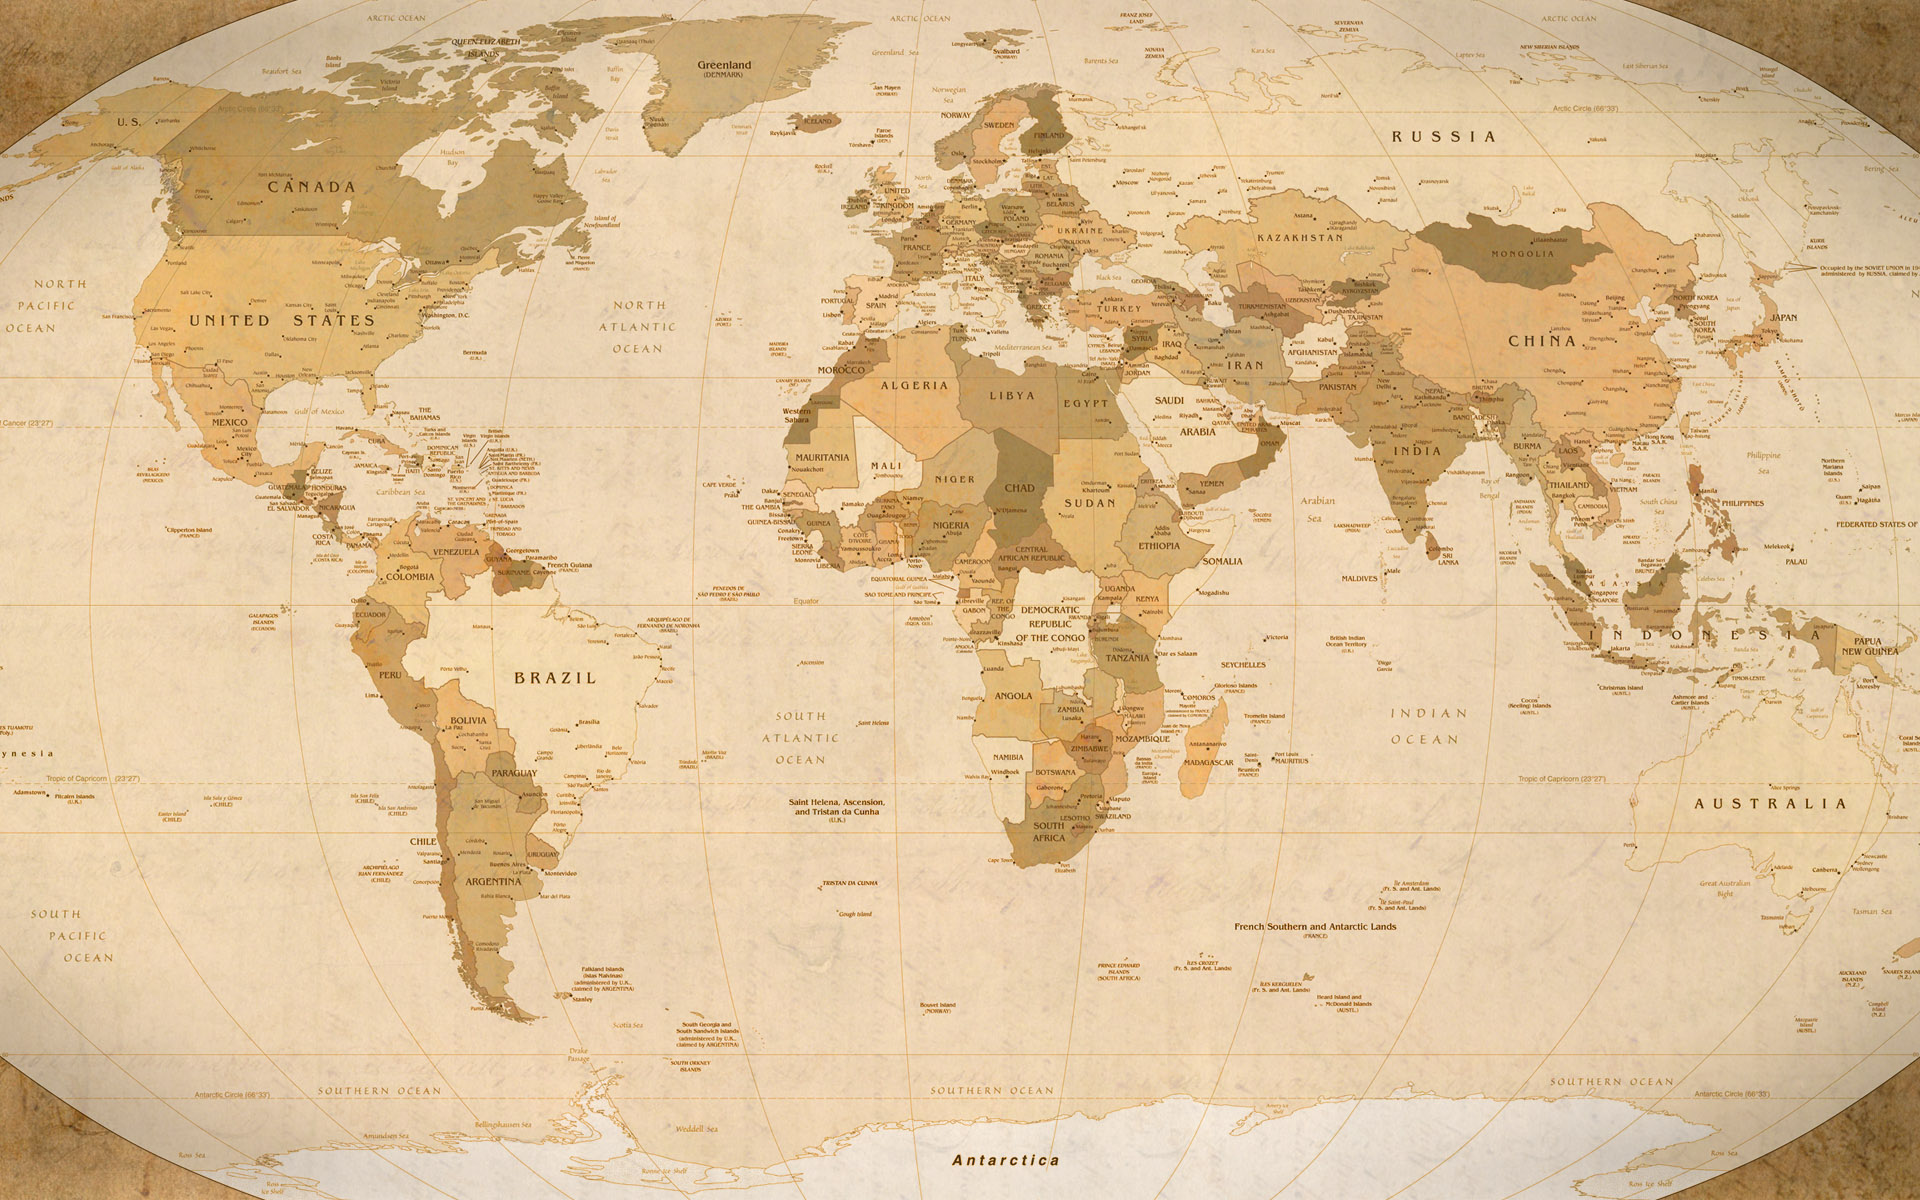 World Map Wall Paper world map wallpaper 6259 1920x1200 px ~ hdwallsource